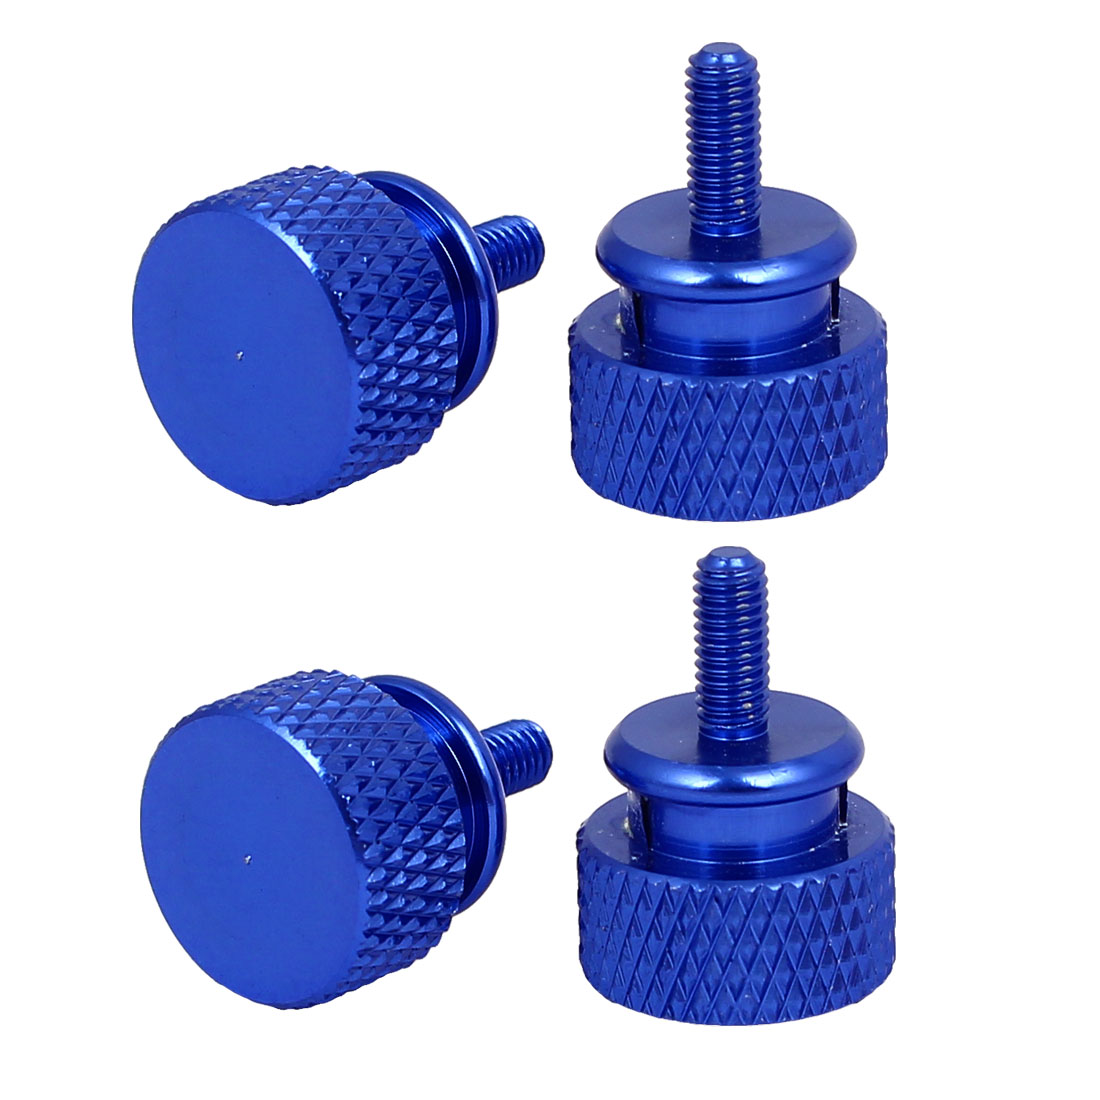 Computer PC Case Aluminum Alloy Knurled Thumb Screws Royal Blue M3x7mm 4pcs